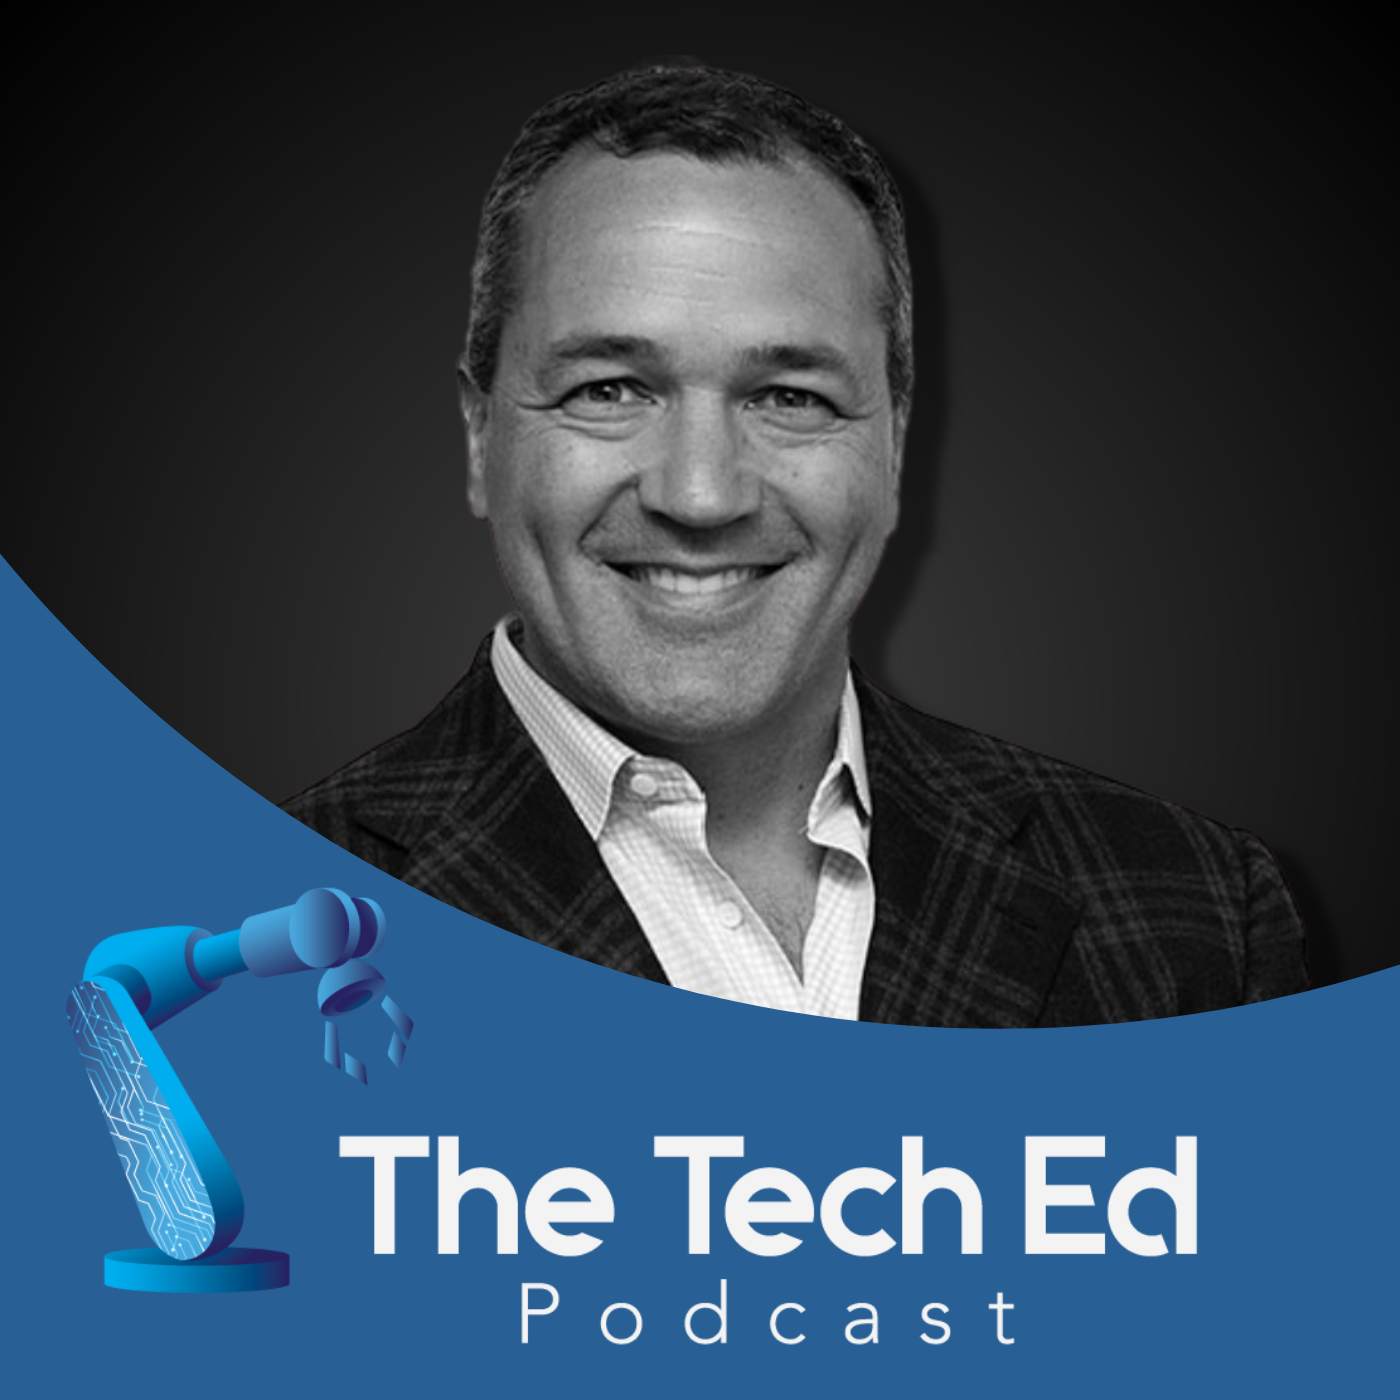 Rick Anderson on The TechEd Podcast